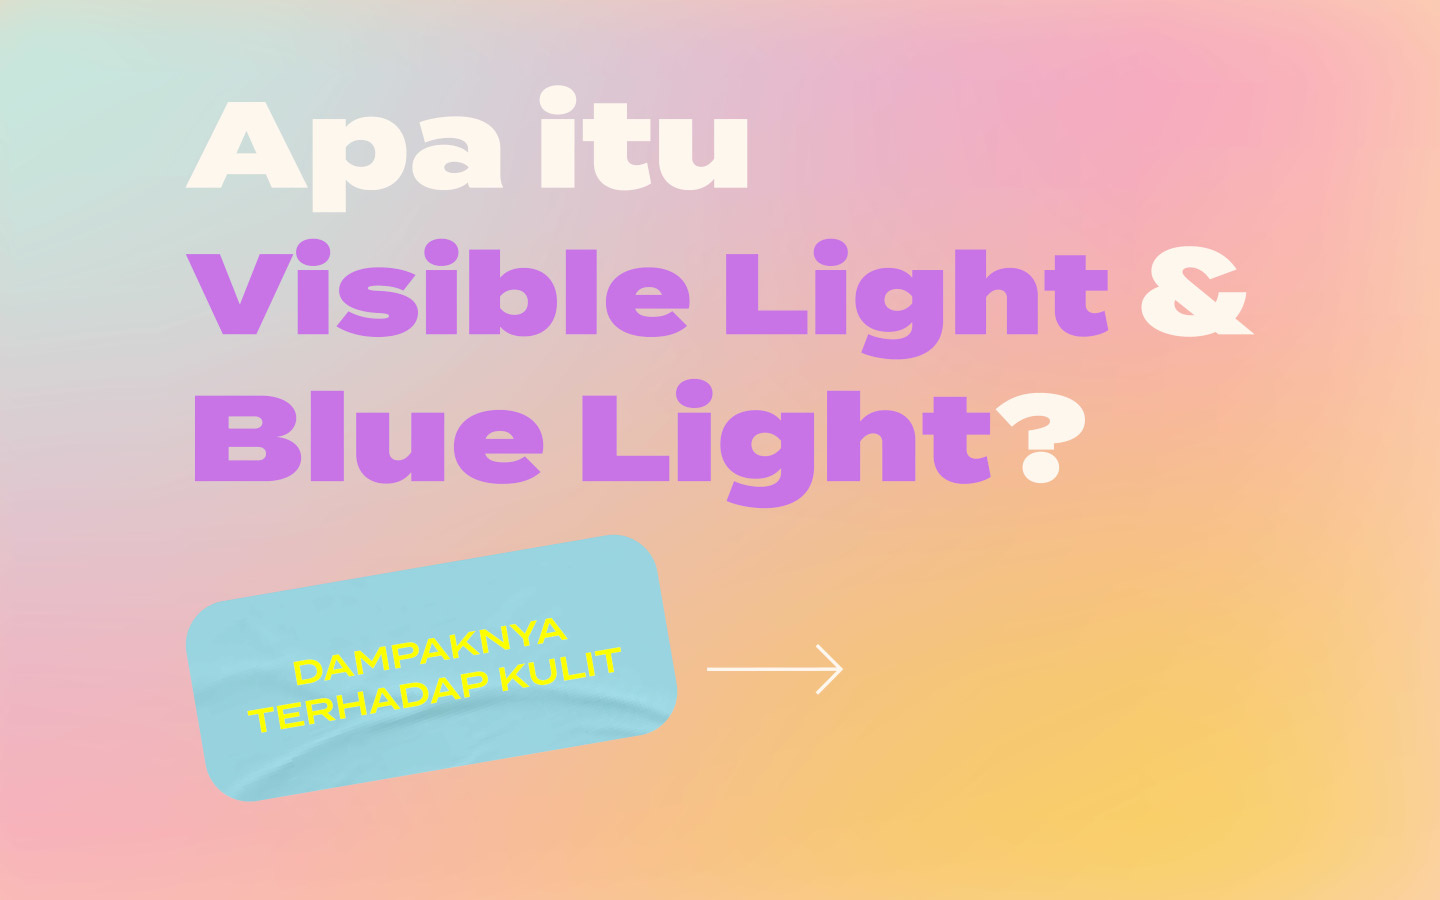 Apa itu Blue Light dan Visible Light? Kenapa Kulitmu Perlu Skincare Anti Blue Light